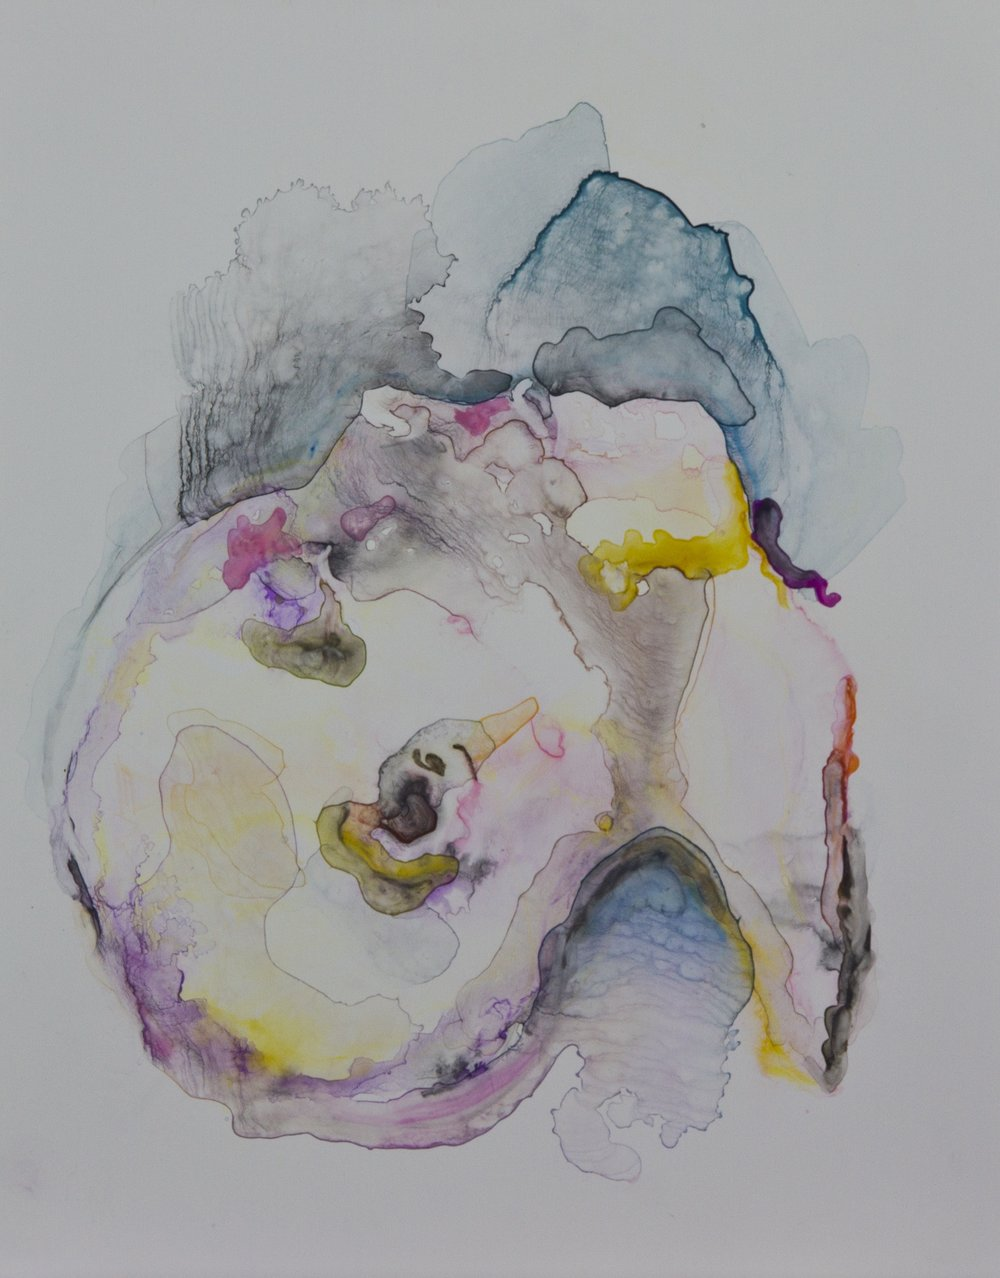 Specimen 3, 2011, watercolor on polypropylene, 11x14 inches